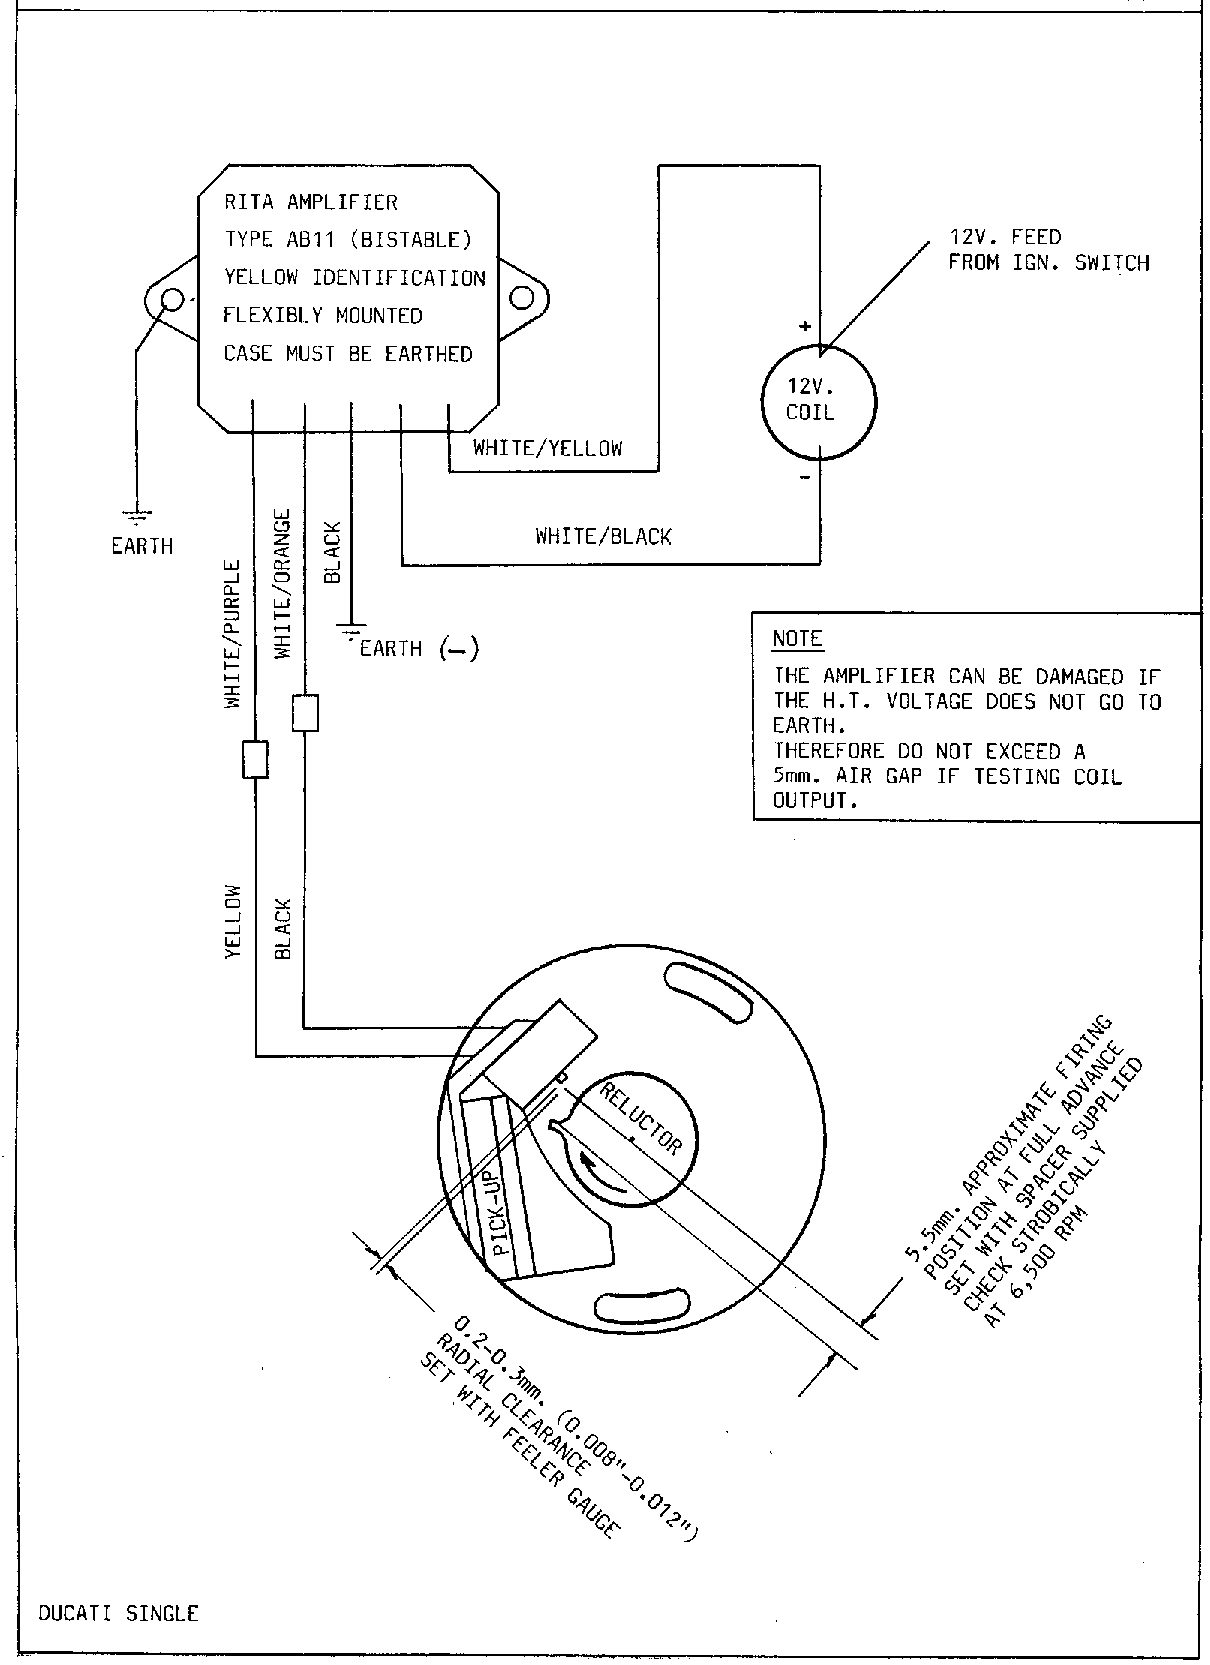 Ducati Single Wiring Harness : 28 Wiring Diagram Images